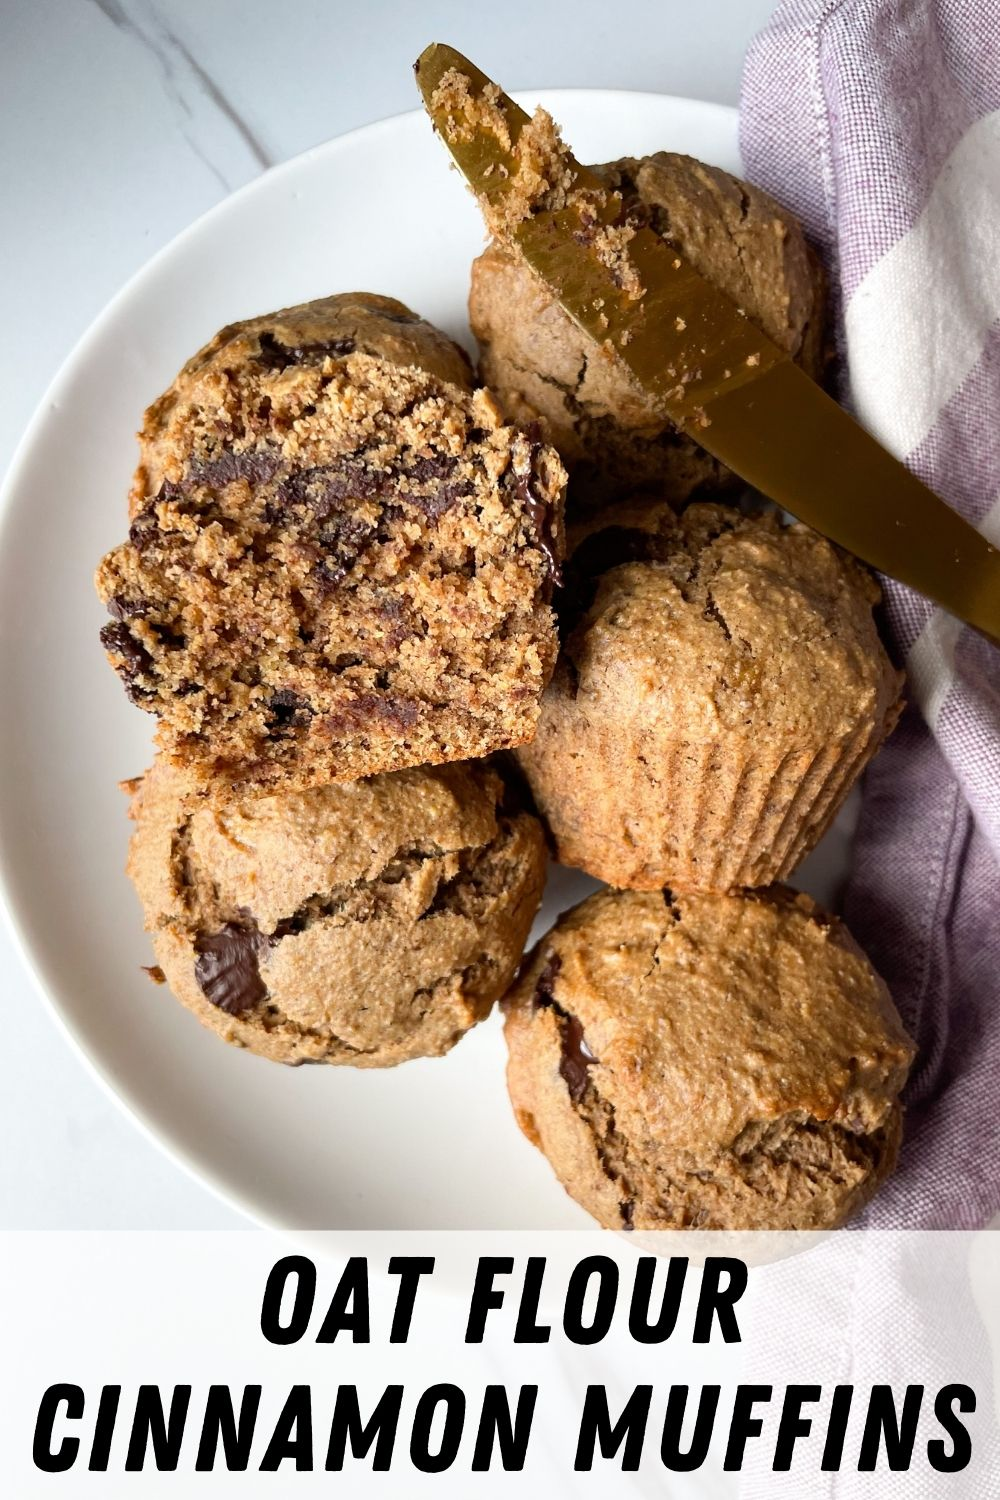 oat flour muffins on plate with gold knife